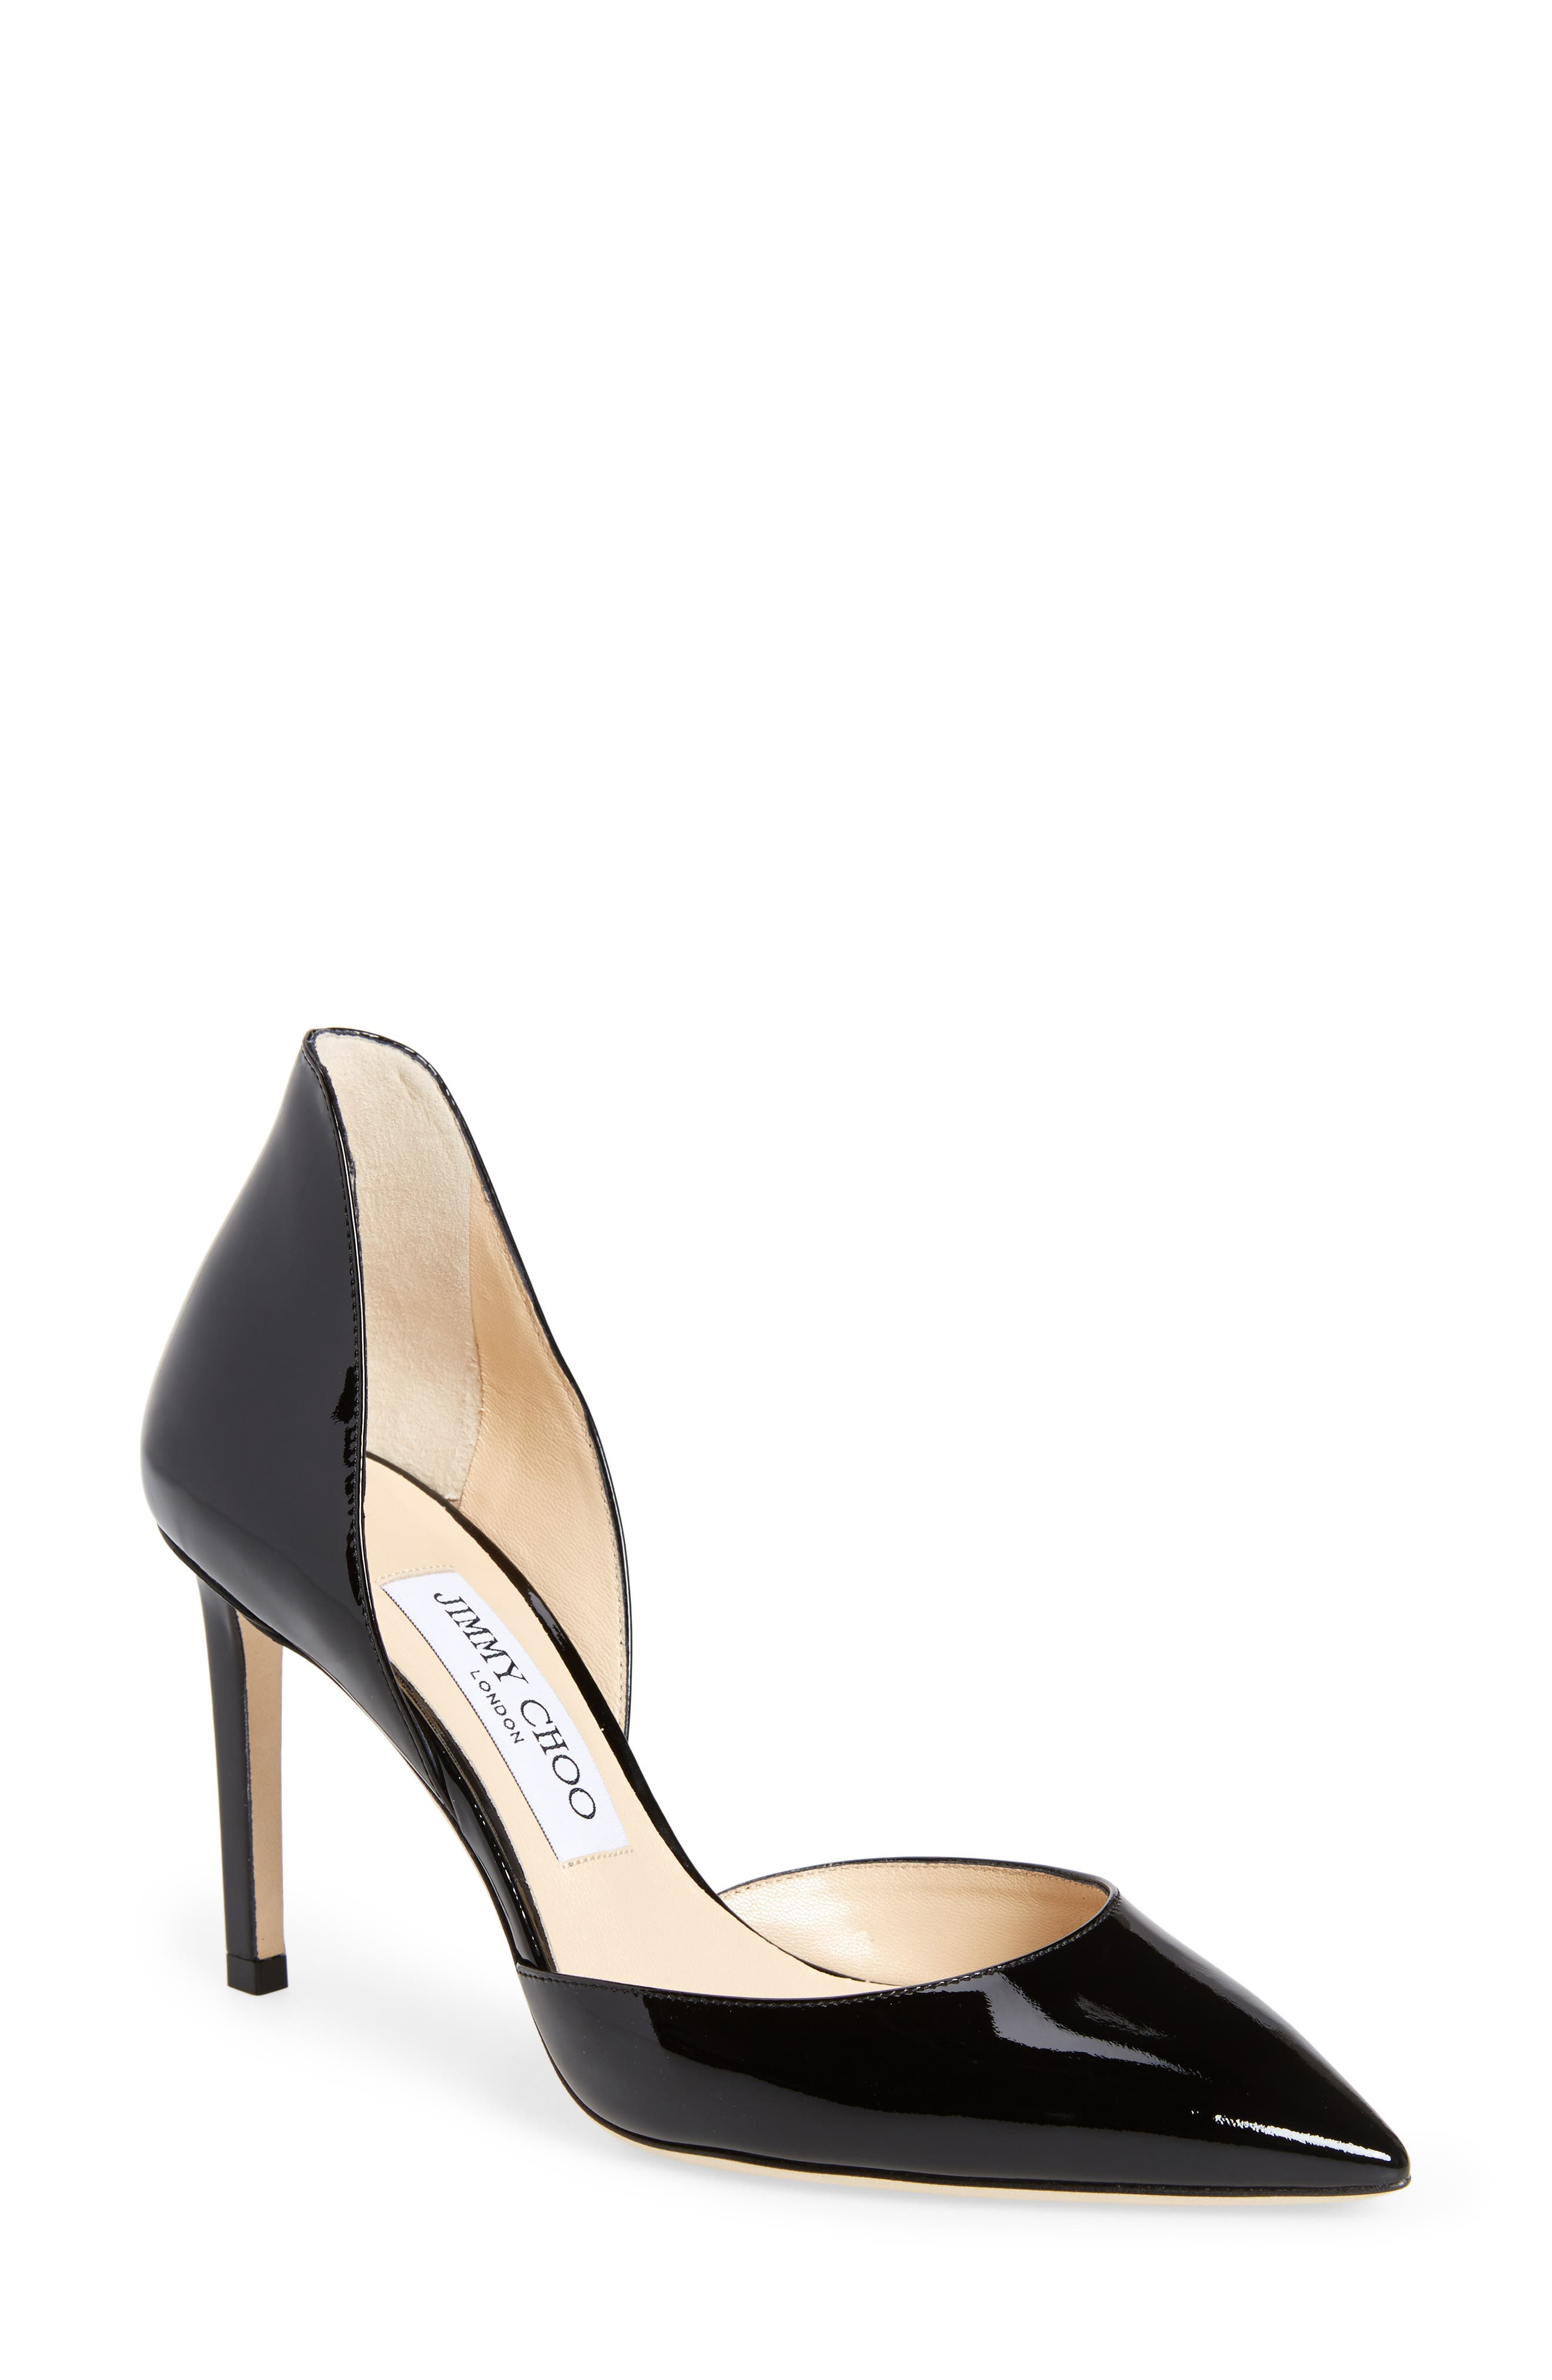 Main Image - Jimmy Choo Liz d'Orsay Pump (Women)